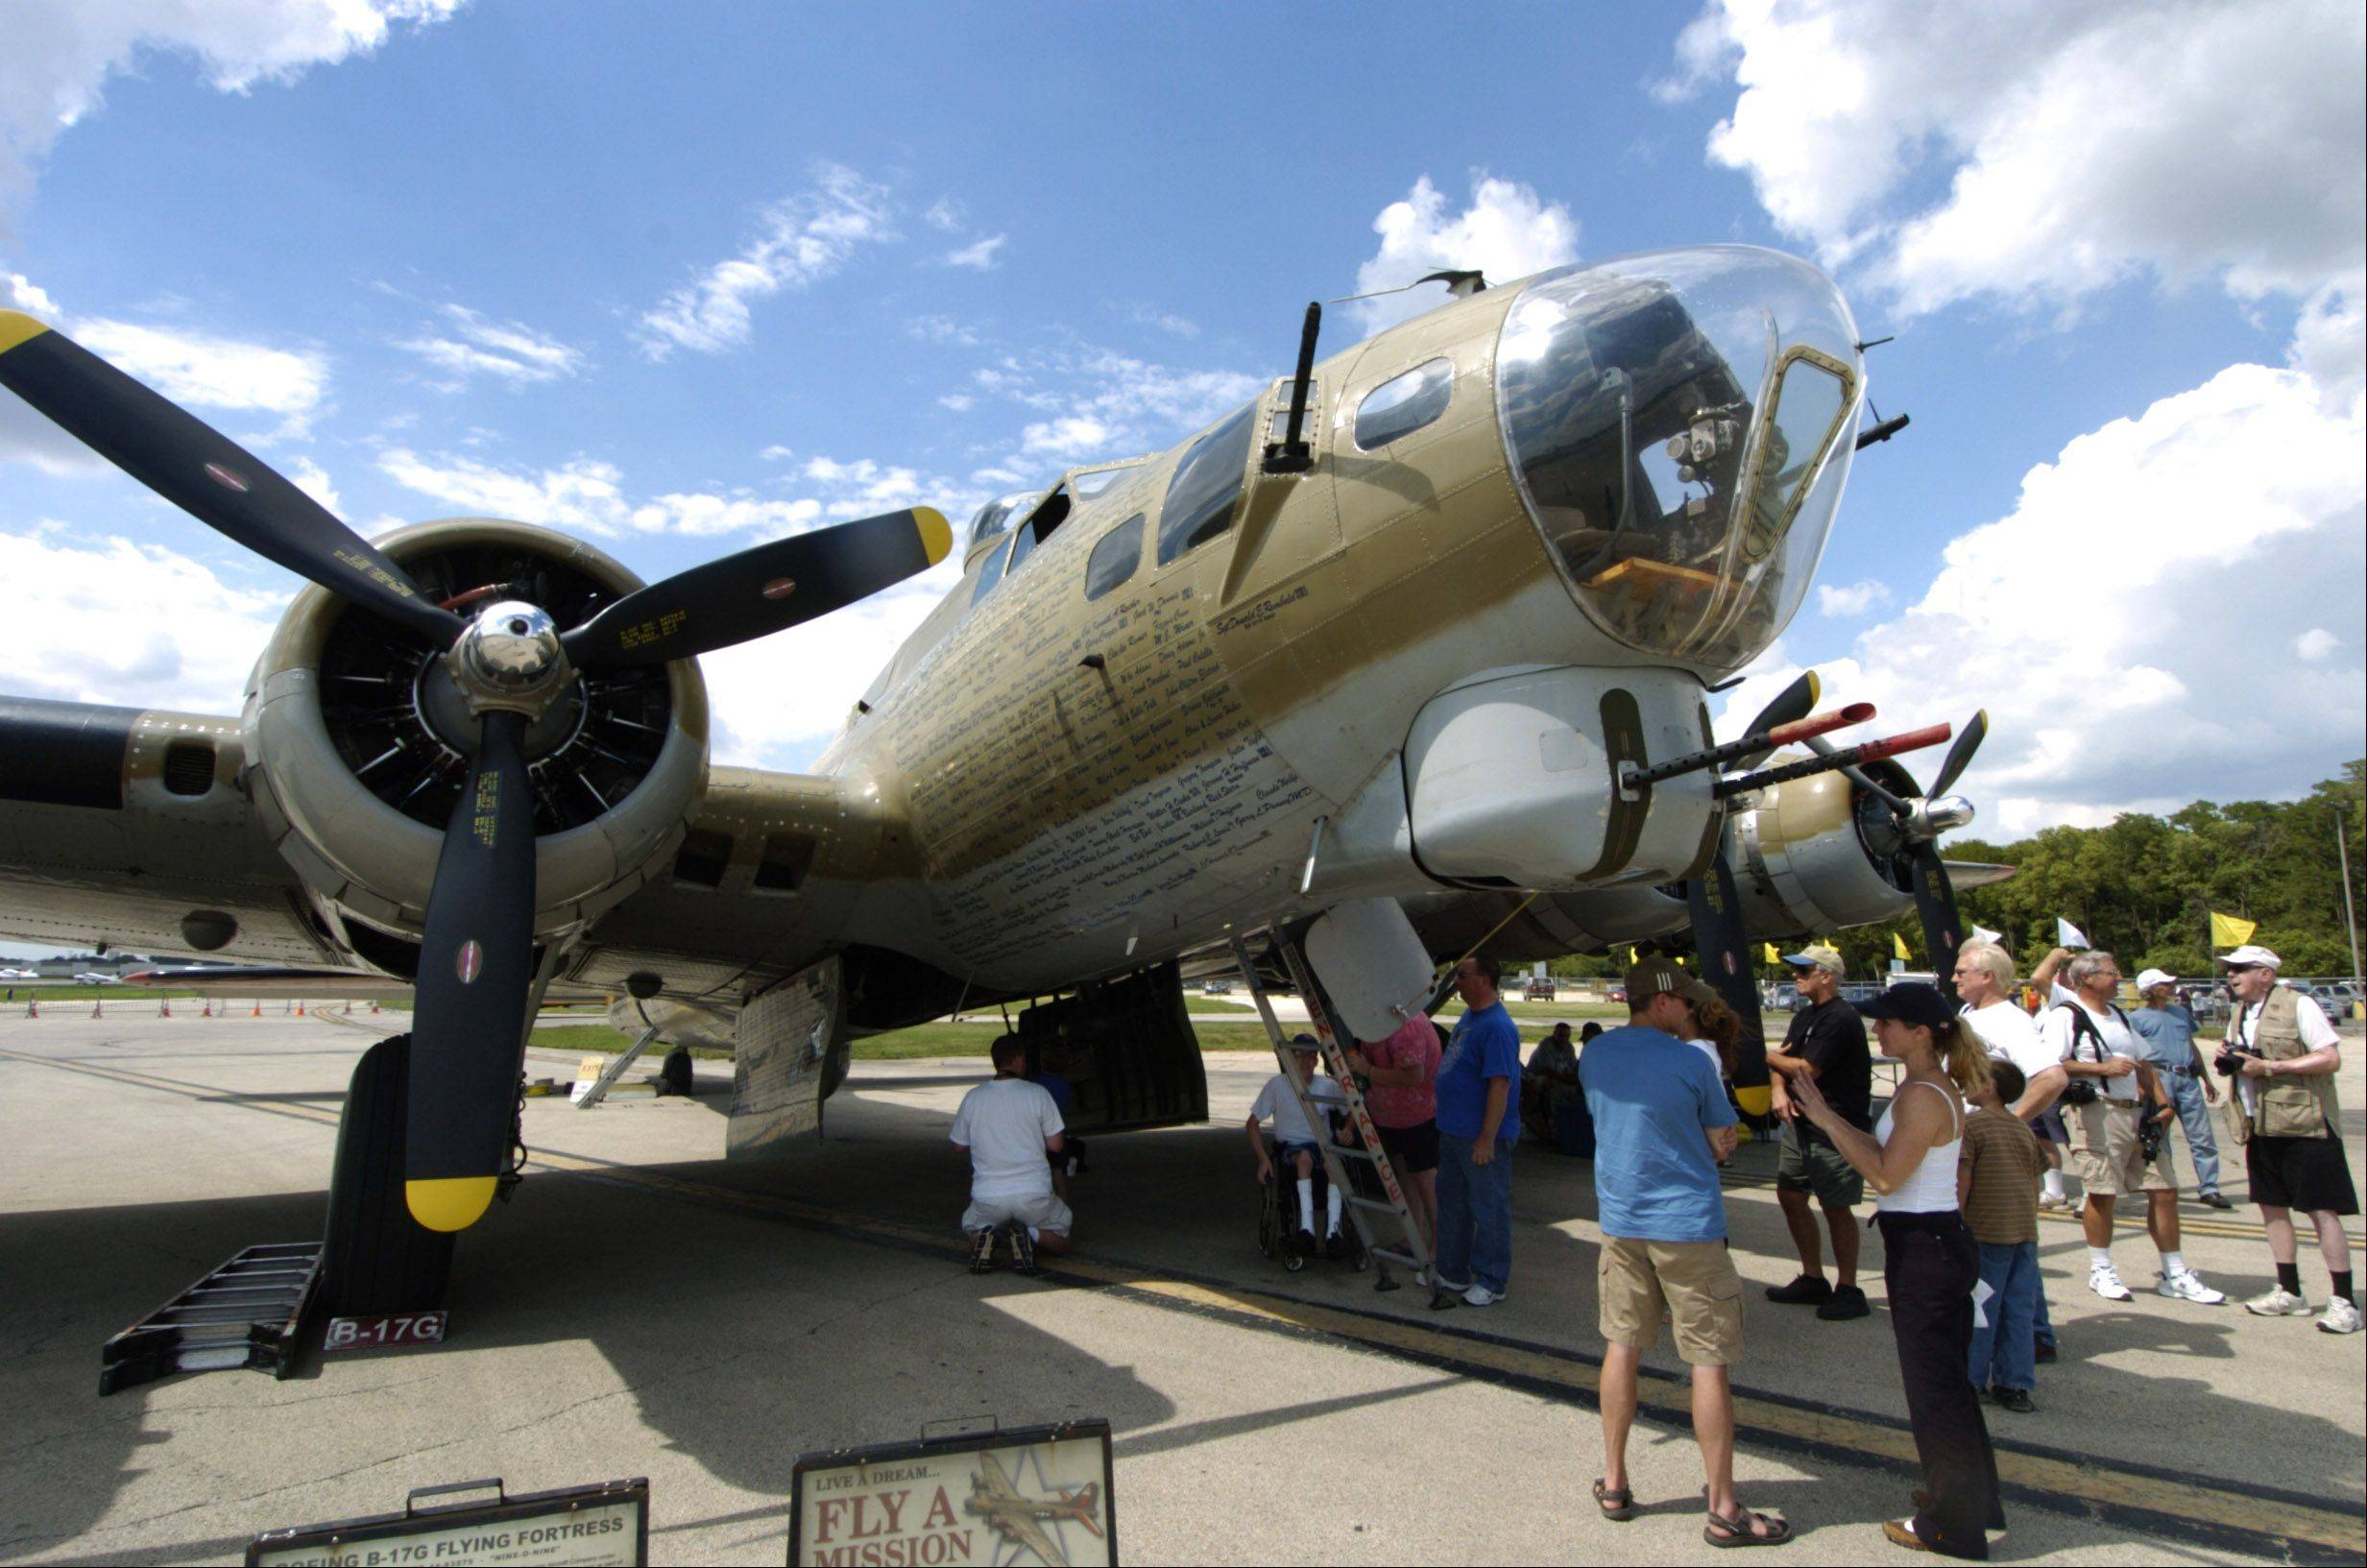 The B-17 bomber coming to the Chicago Executive Airport today is one of only eight still flying in the U.S.